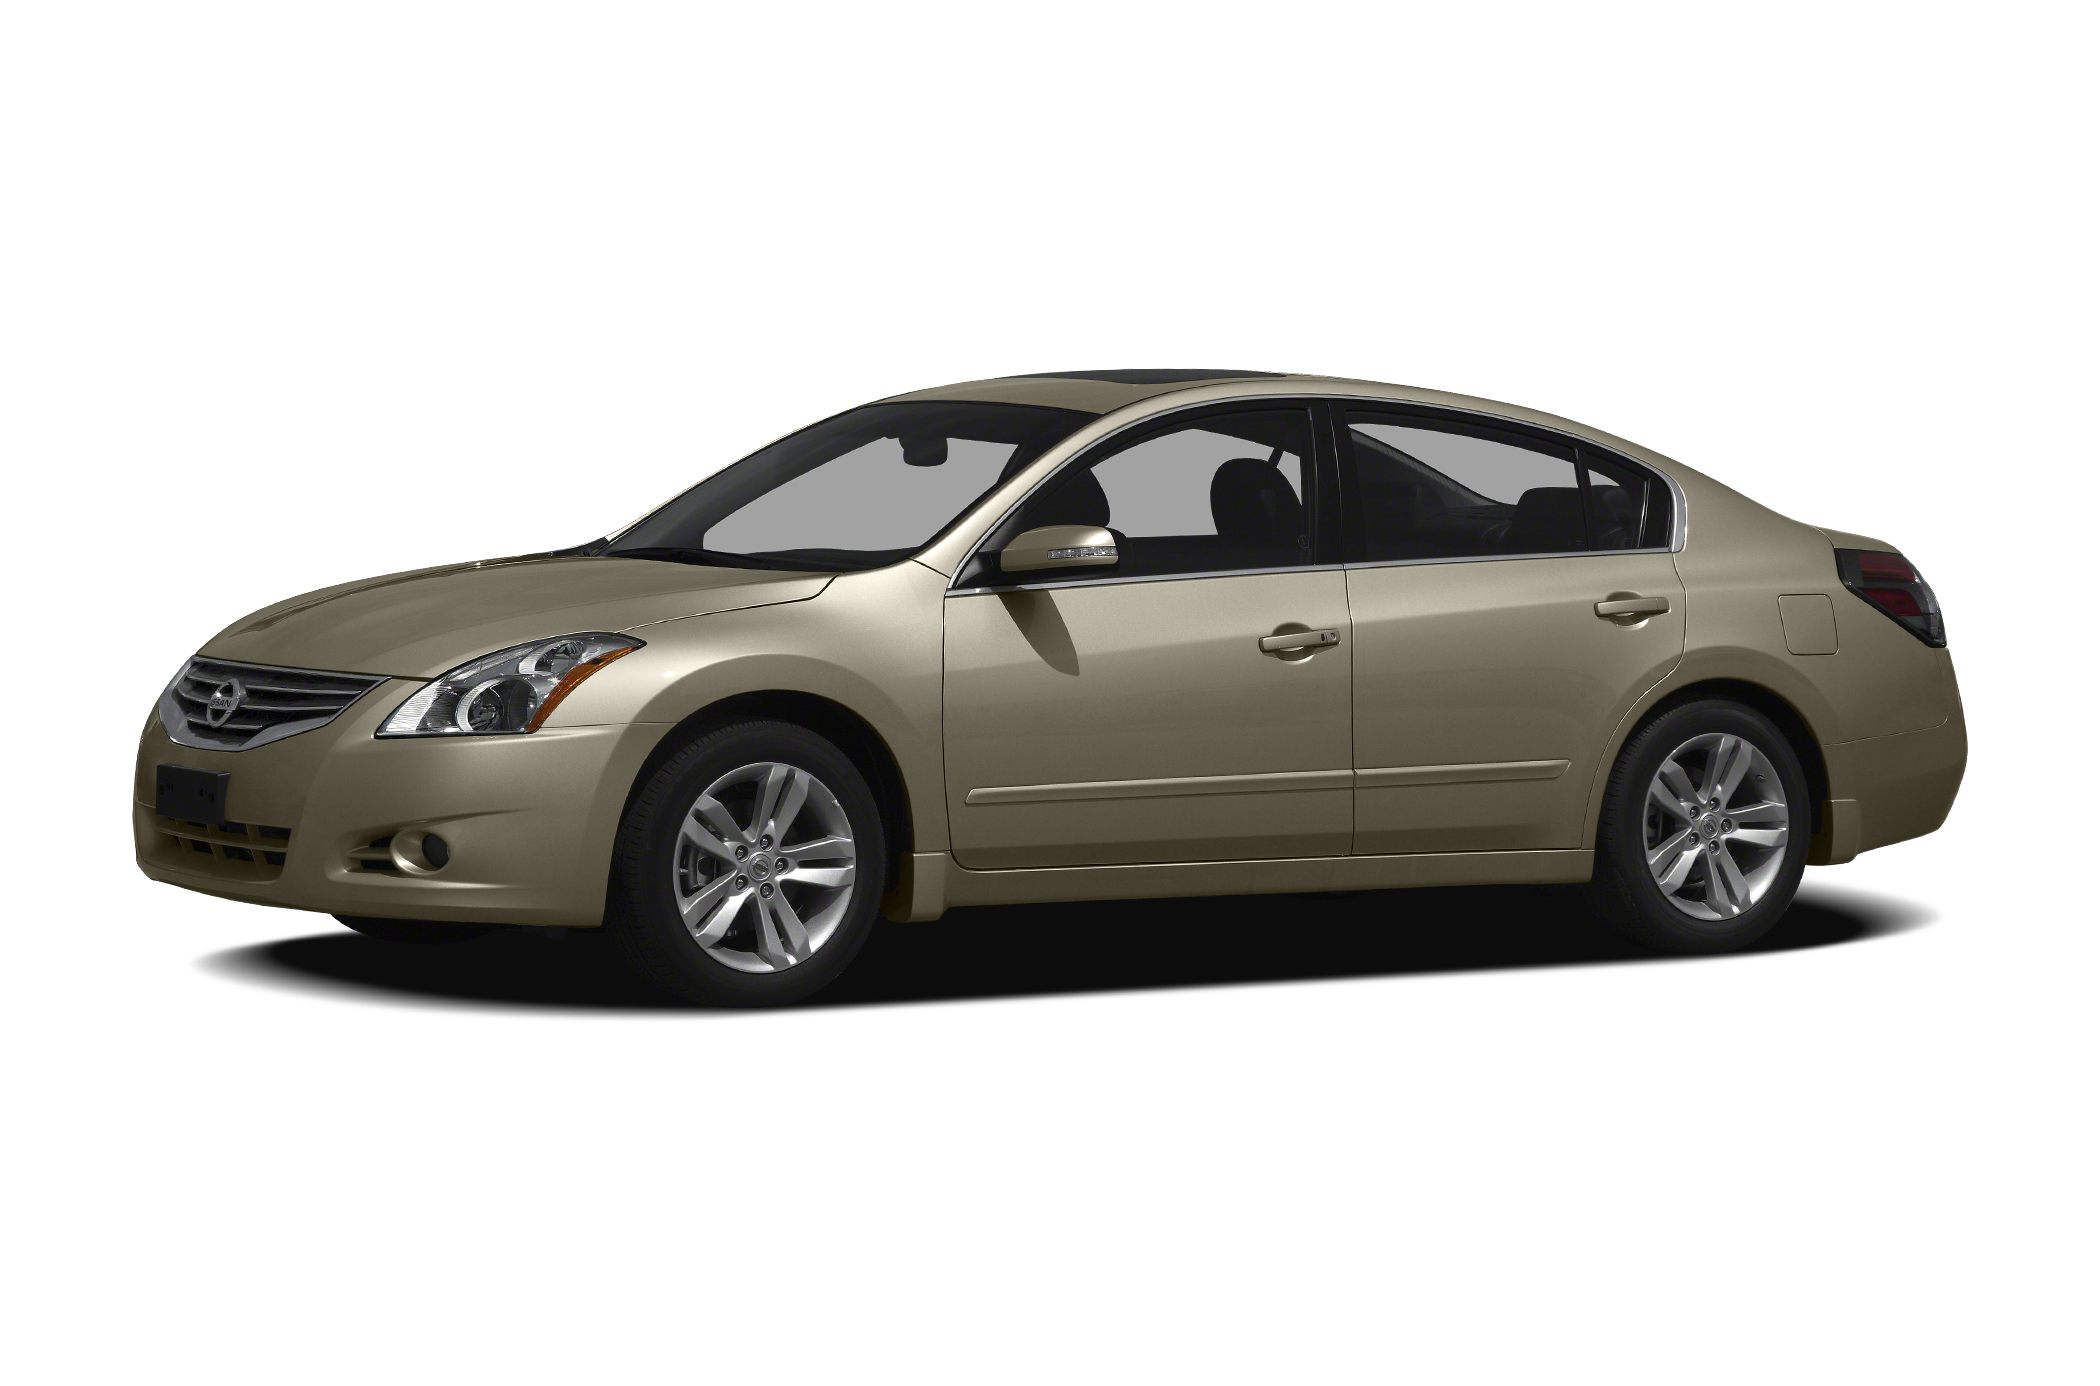 2011 Nissan Altima 25 S CVT with Xtronic Drives like a dream Kicks noise to the curb When was